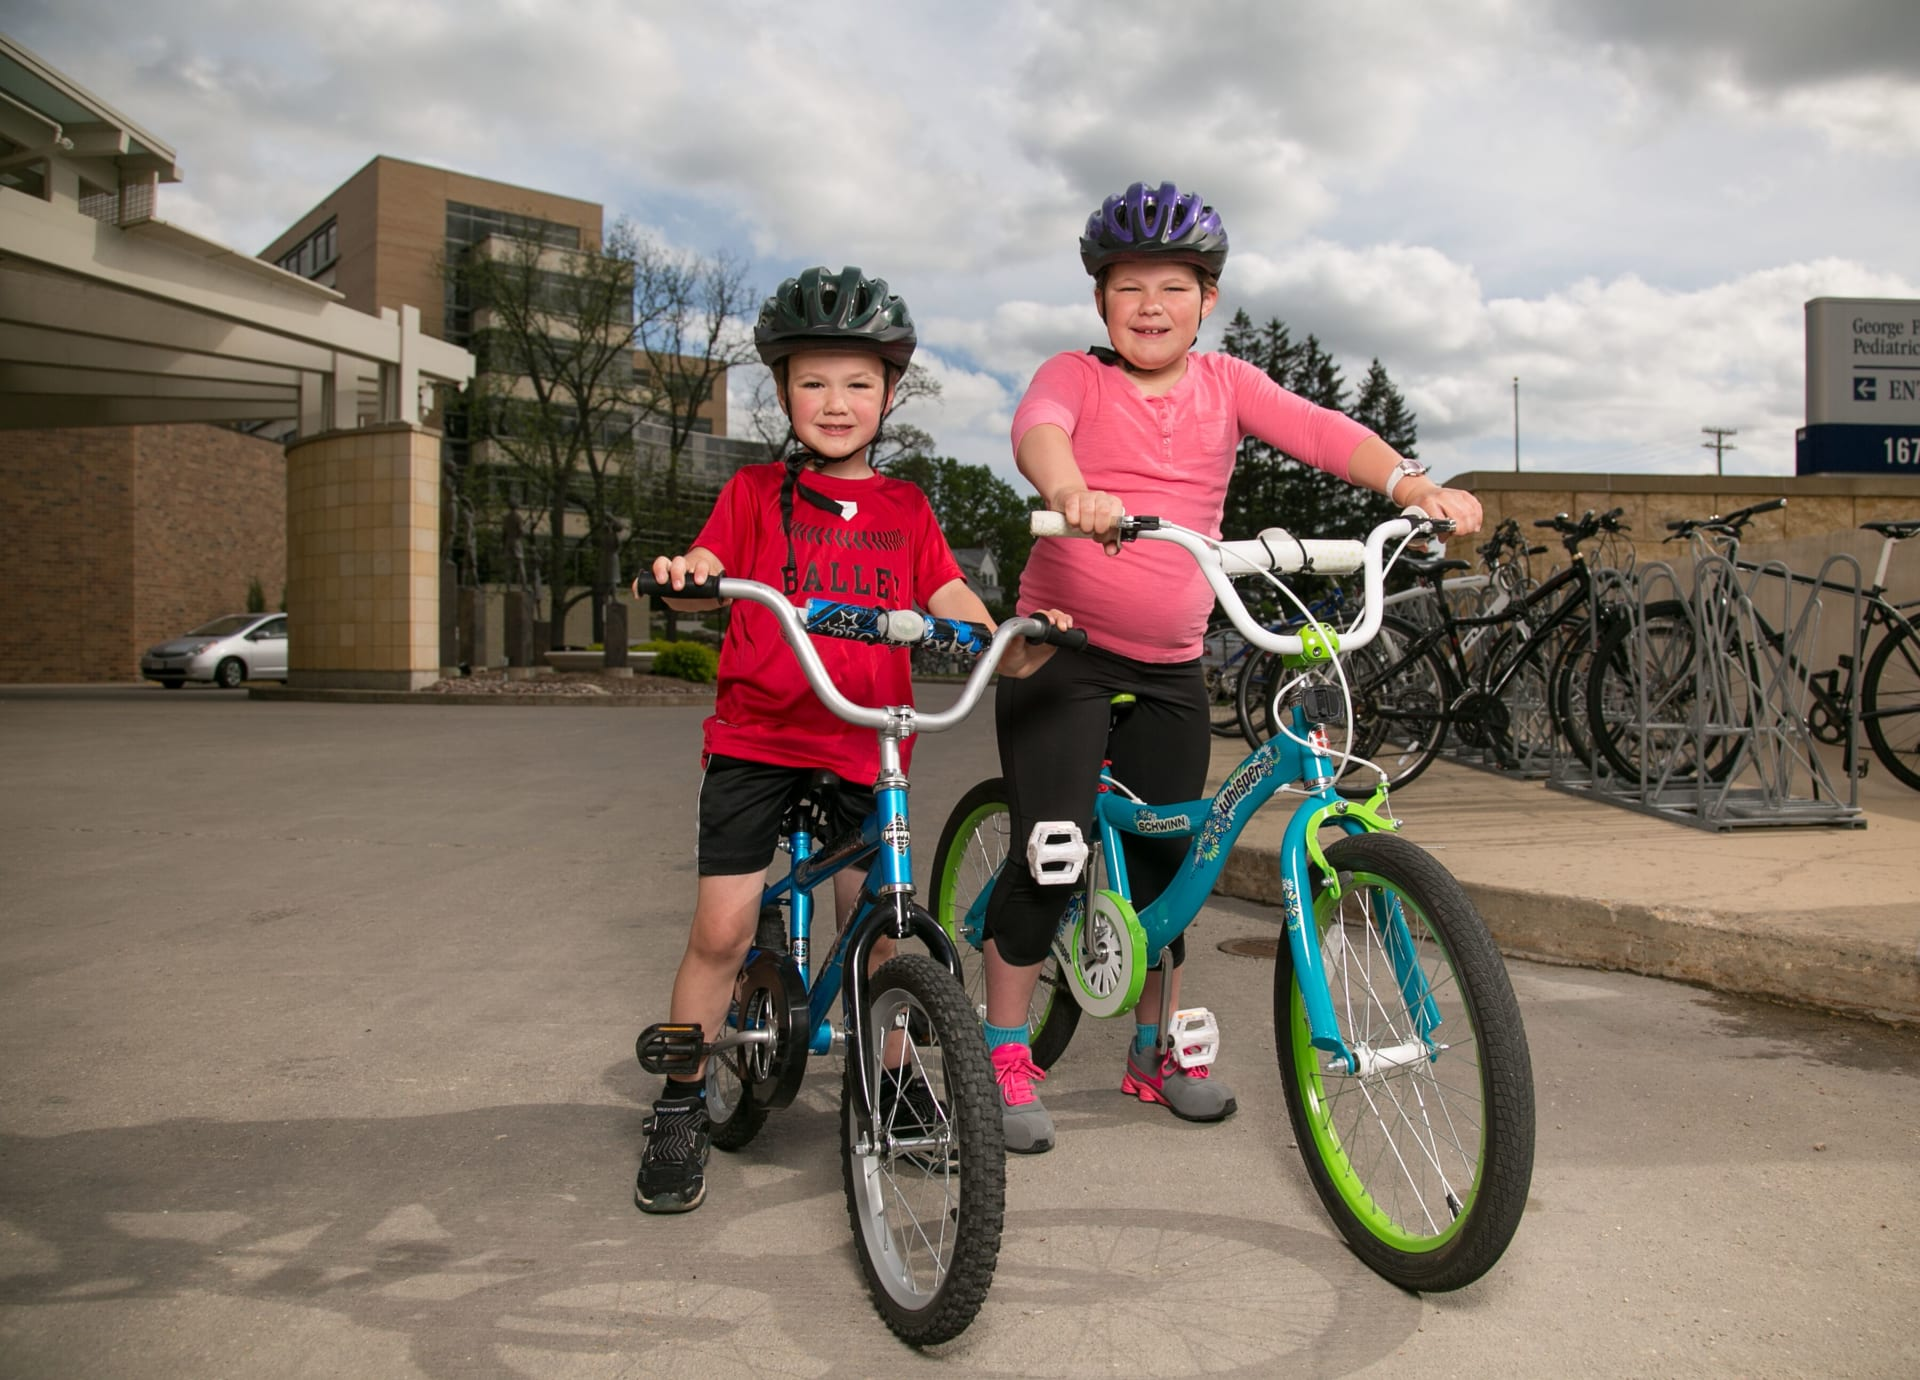 Image of Children biking